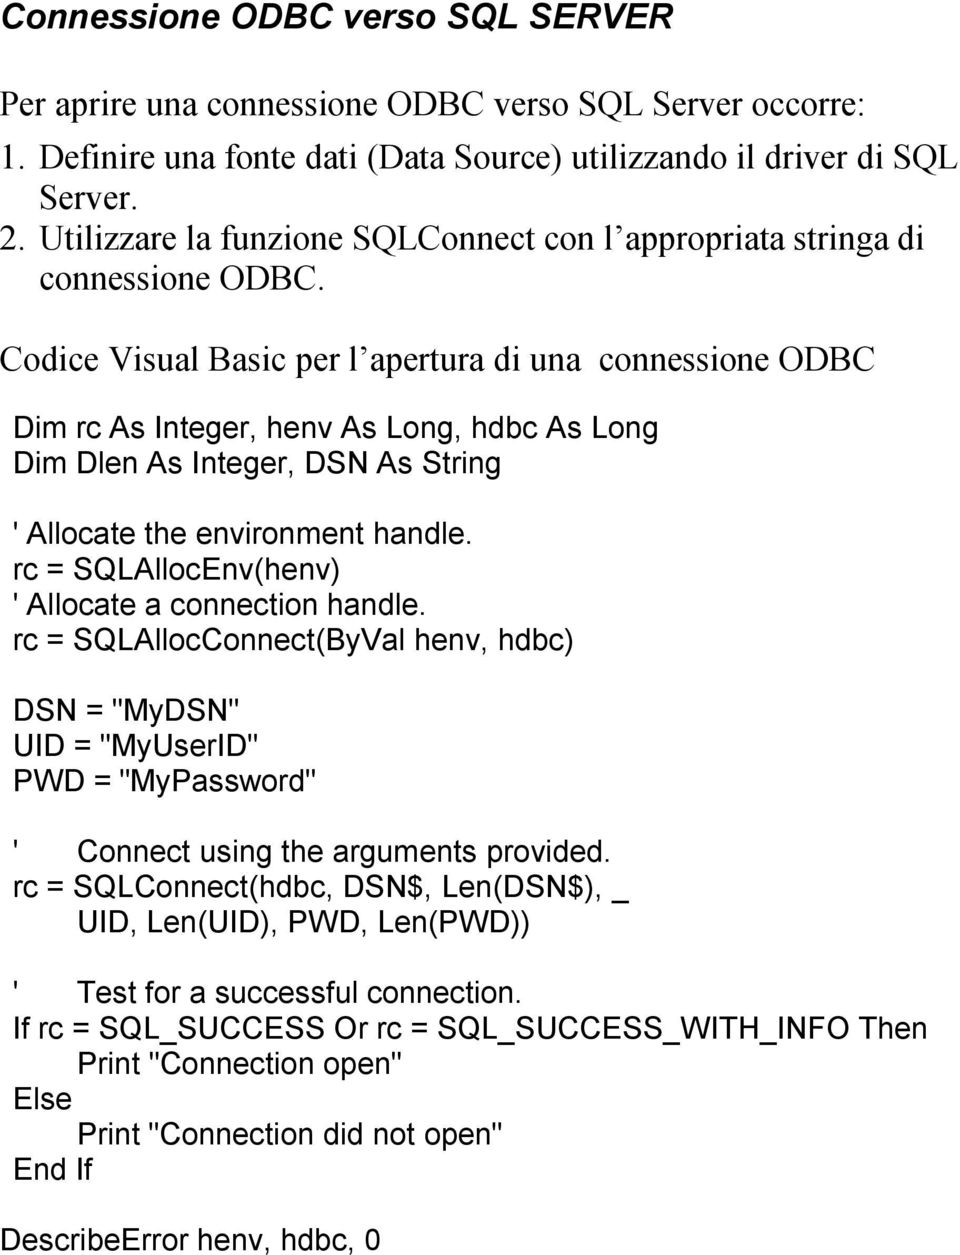 Codice Visual Basic per l apertura di una connessione ODBC Dim rc As Integer, henv As Long, hdbc As Long Dim Dlen As Integer, DSN As String ' Allocate the environment handle.